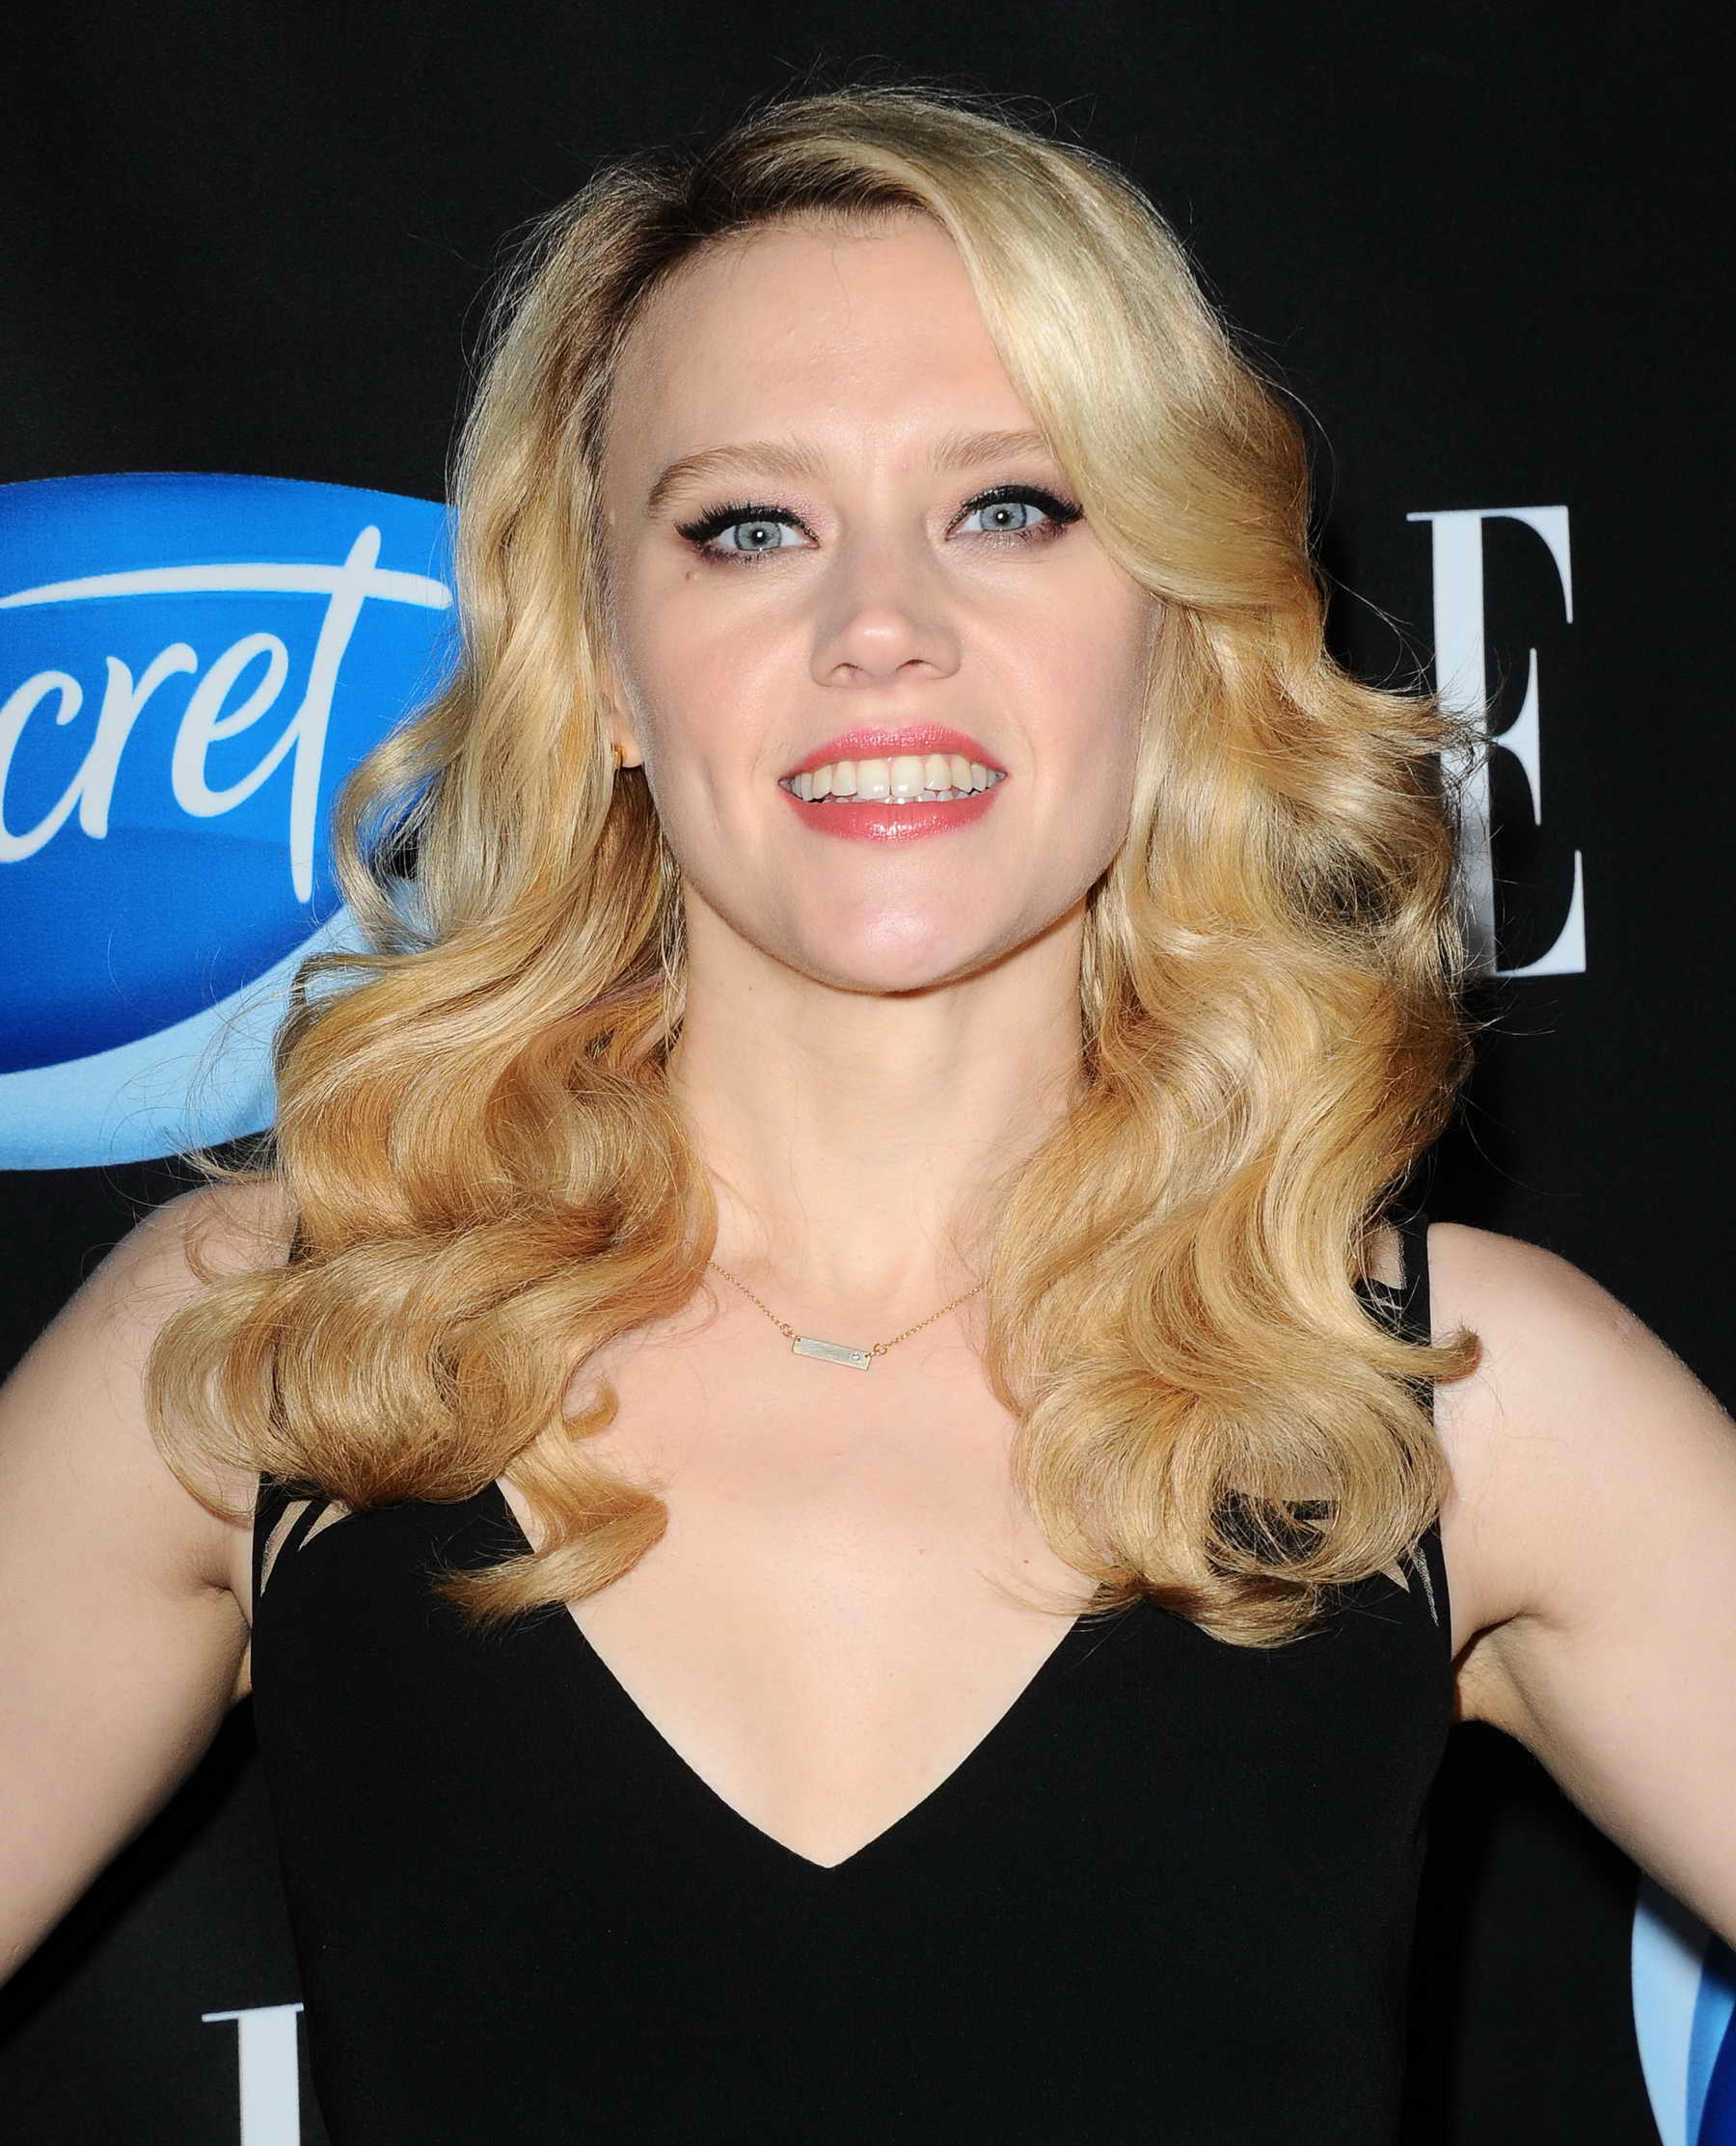 Kate Mckinnon >> Kate McKinnon at the ELLE Hosts Women in Comedy Event in ...